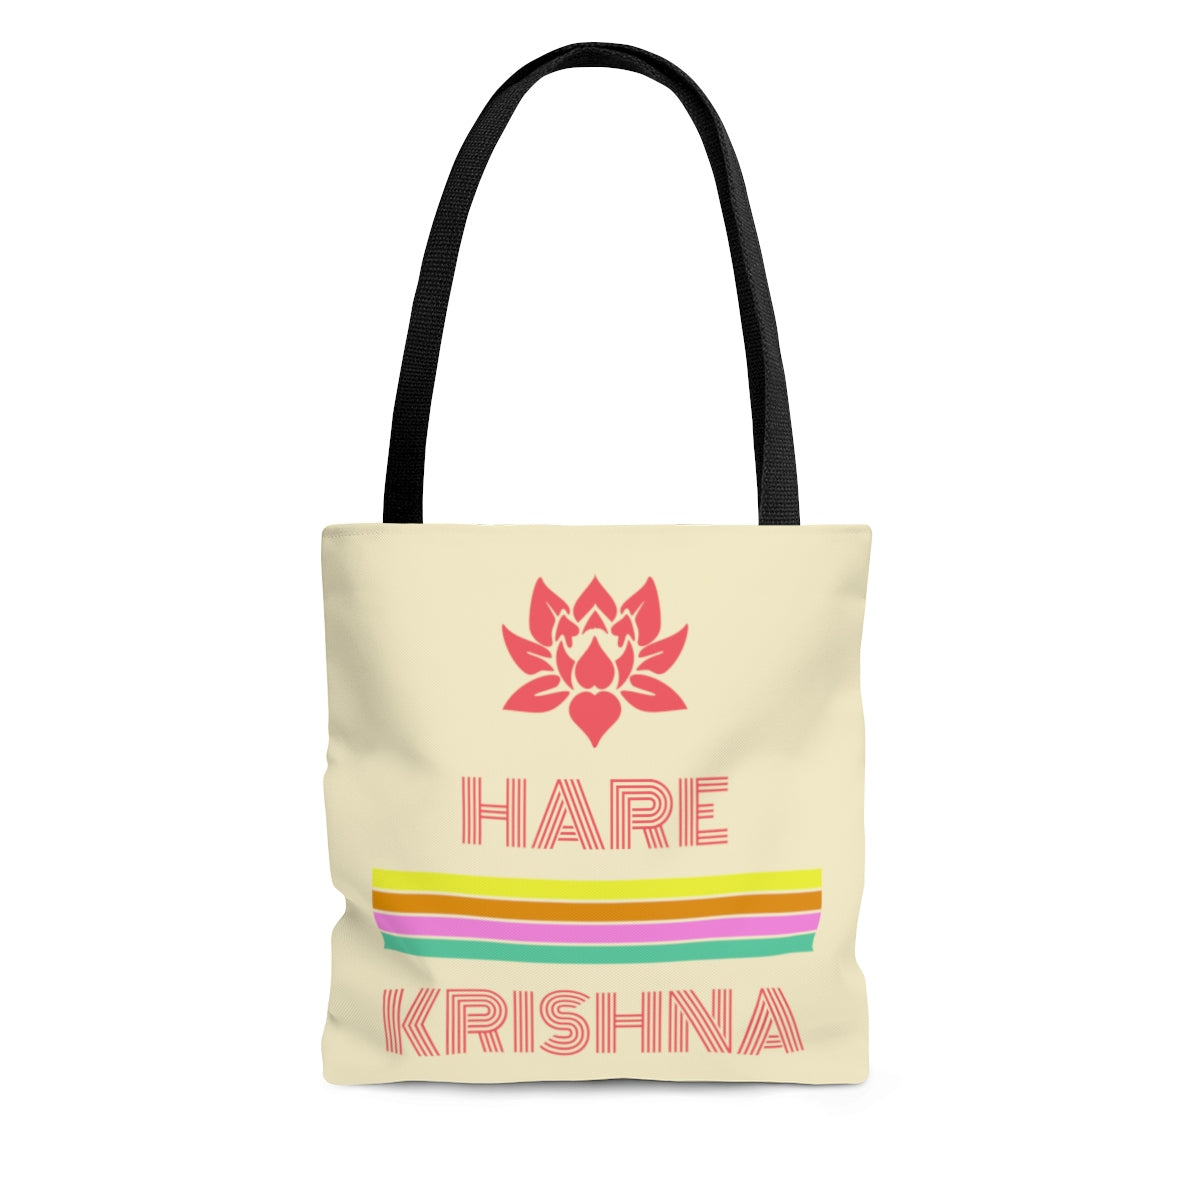 Hare Krishna AOP Tote Bag - DaVatka Fashion